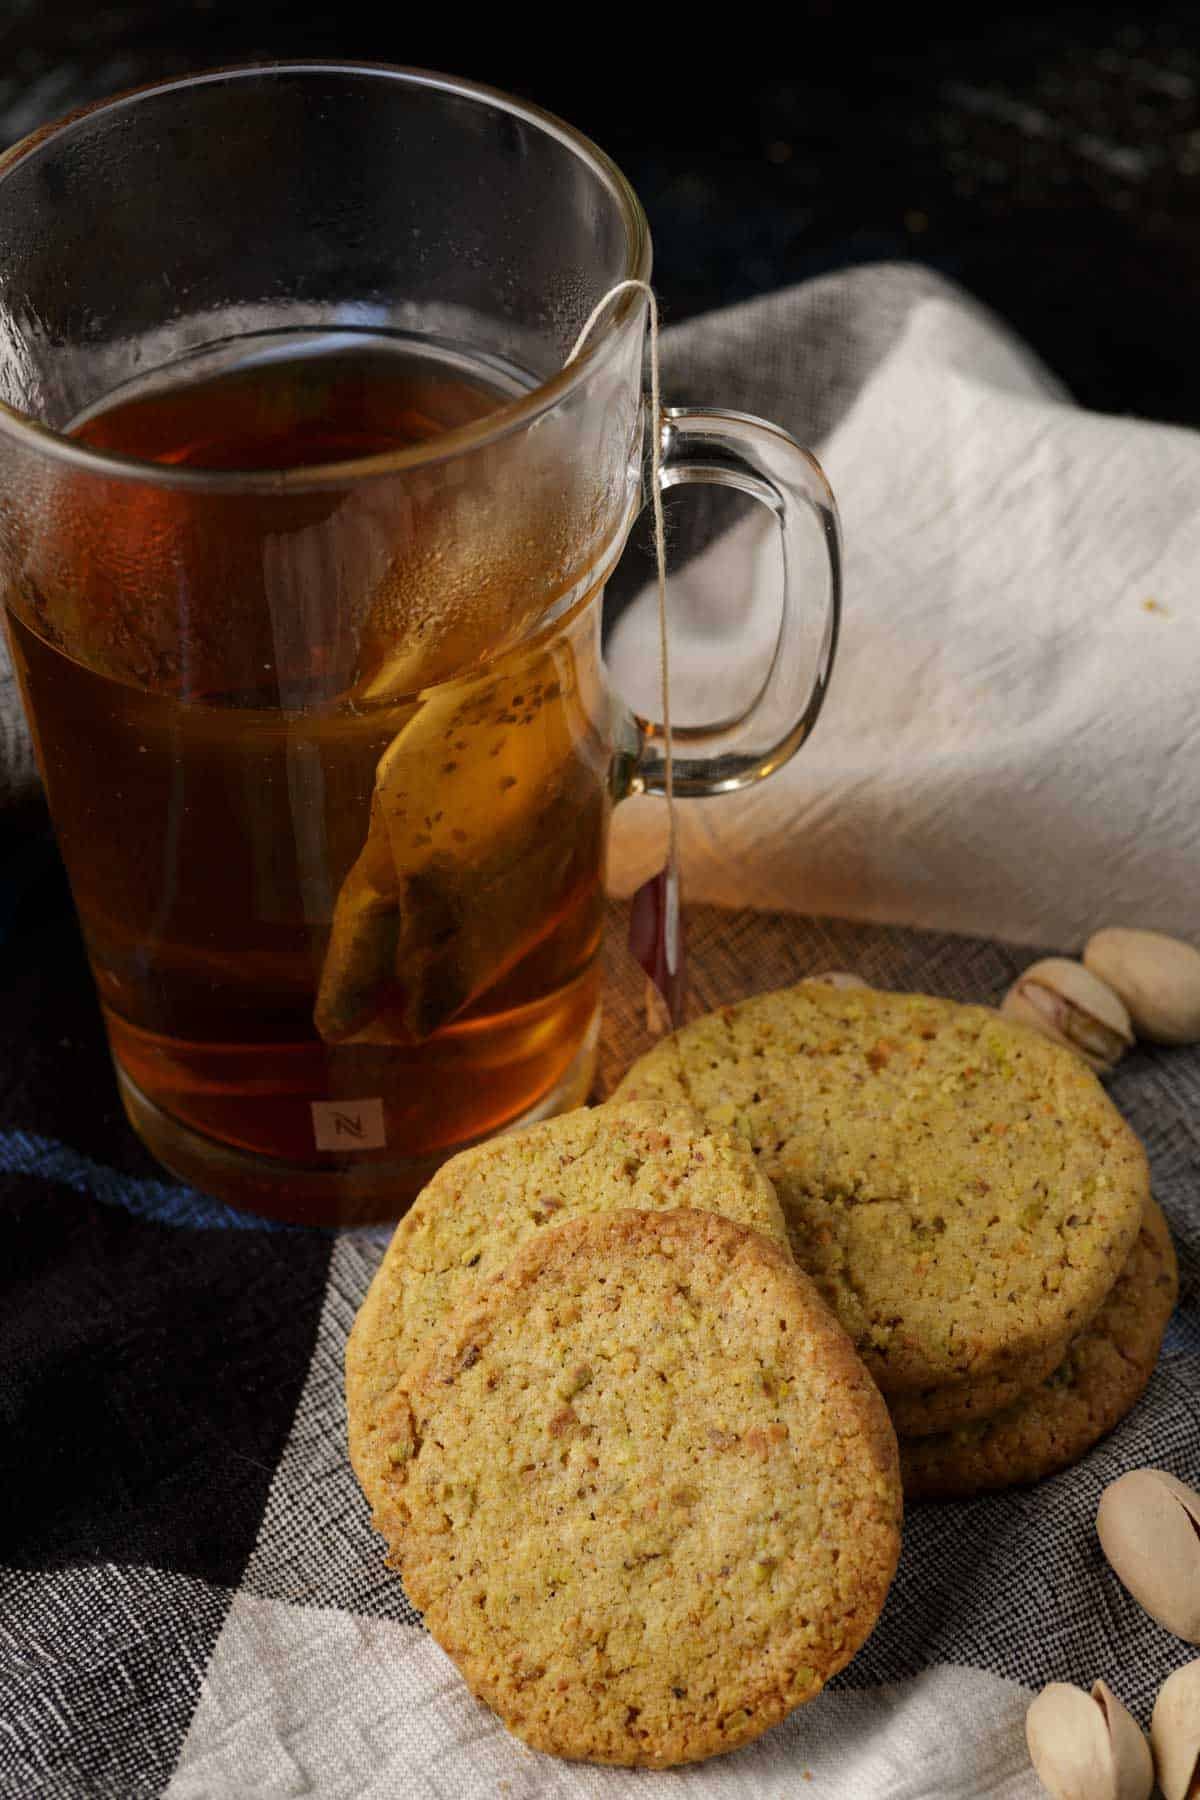 Shortbread cookies with a cup of tea